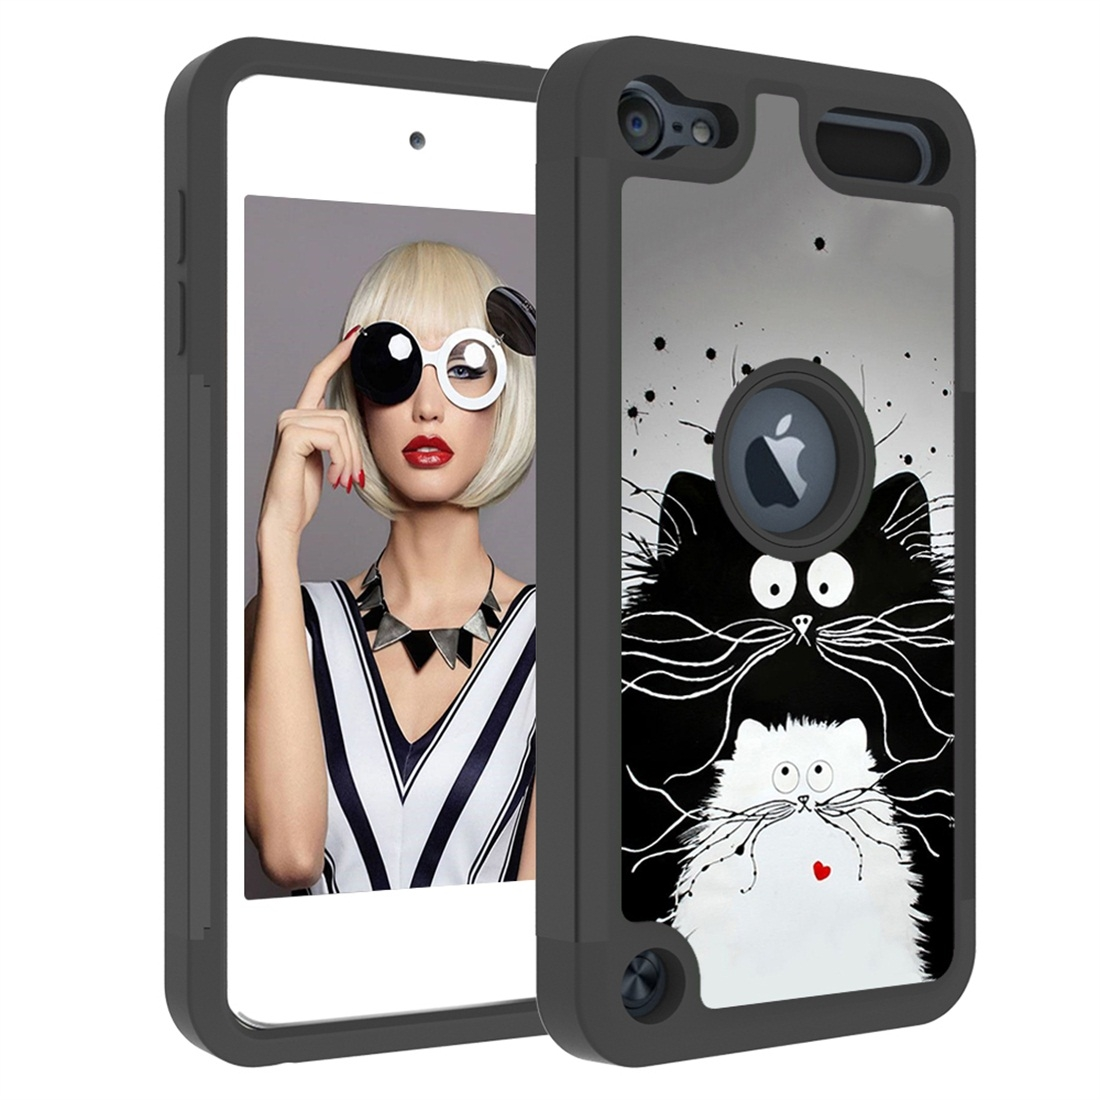 Colorful  Design PC/Protective Durable Casing for iPod touch 5/ 6/ 7 (2019) (Black and White Cats)